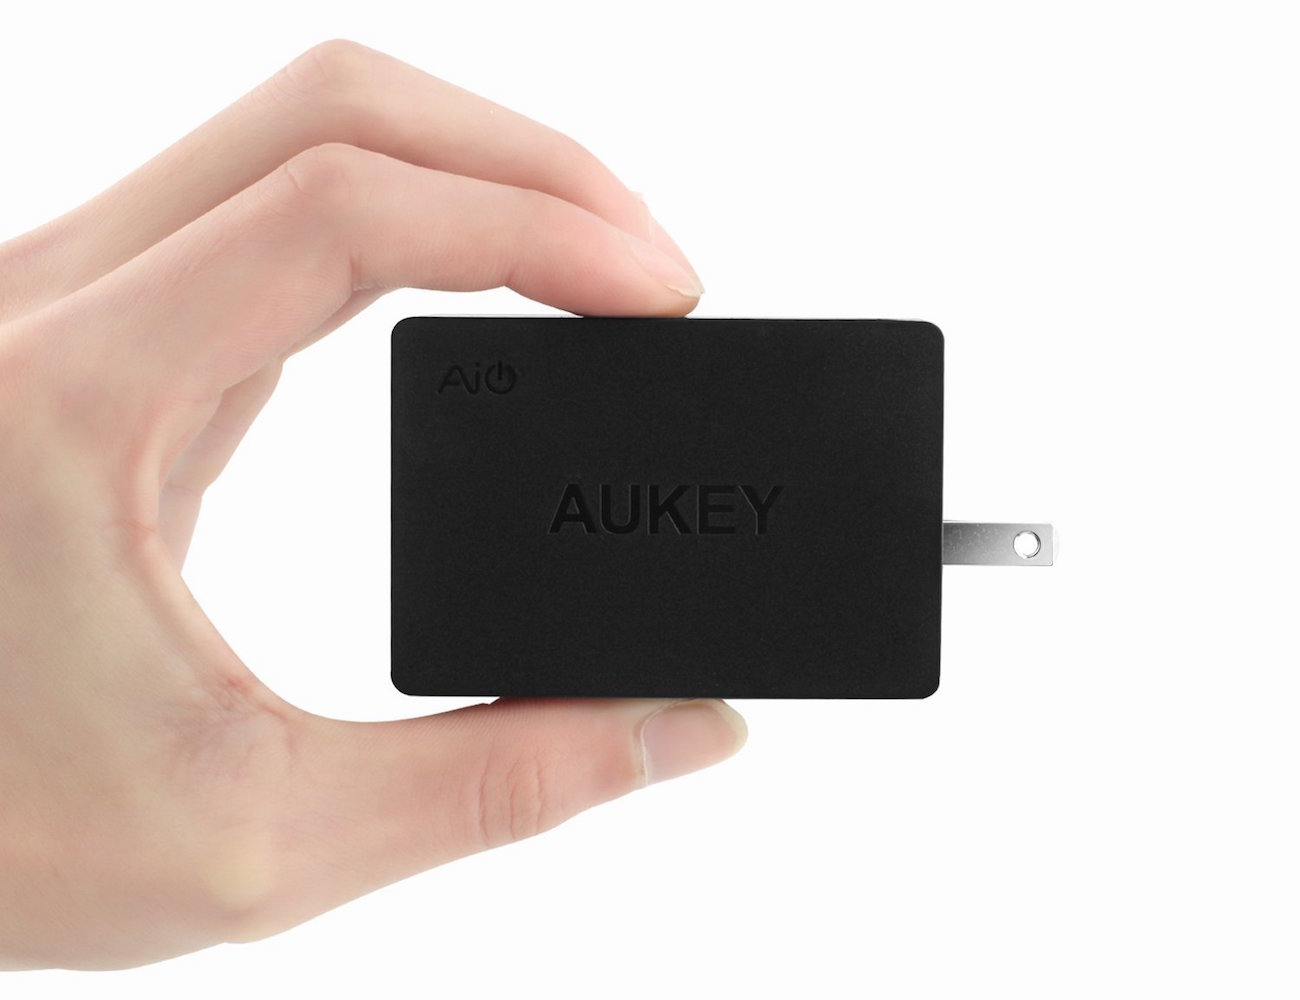 USB Travel Wall Charger Adapter by Aukey